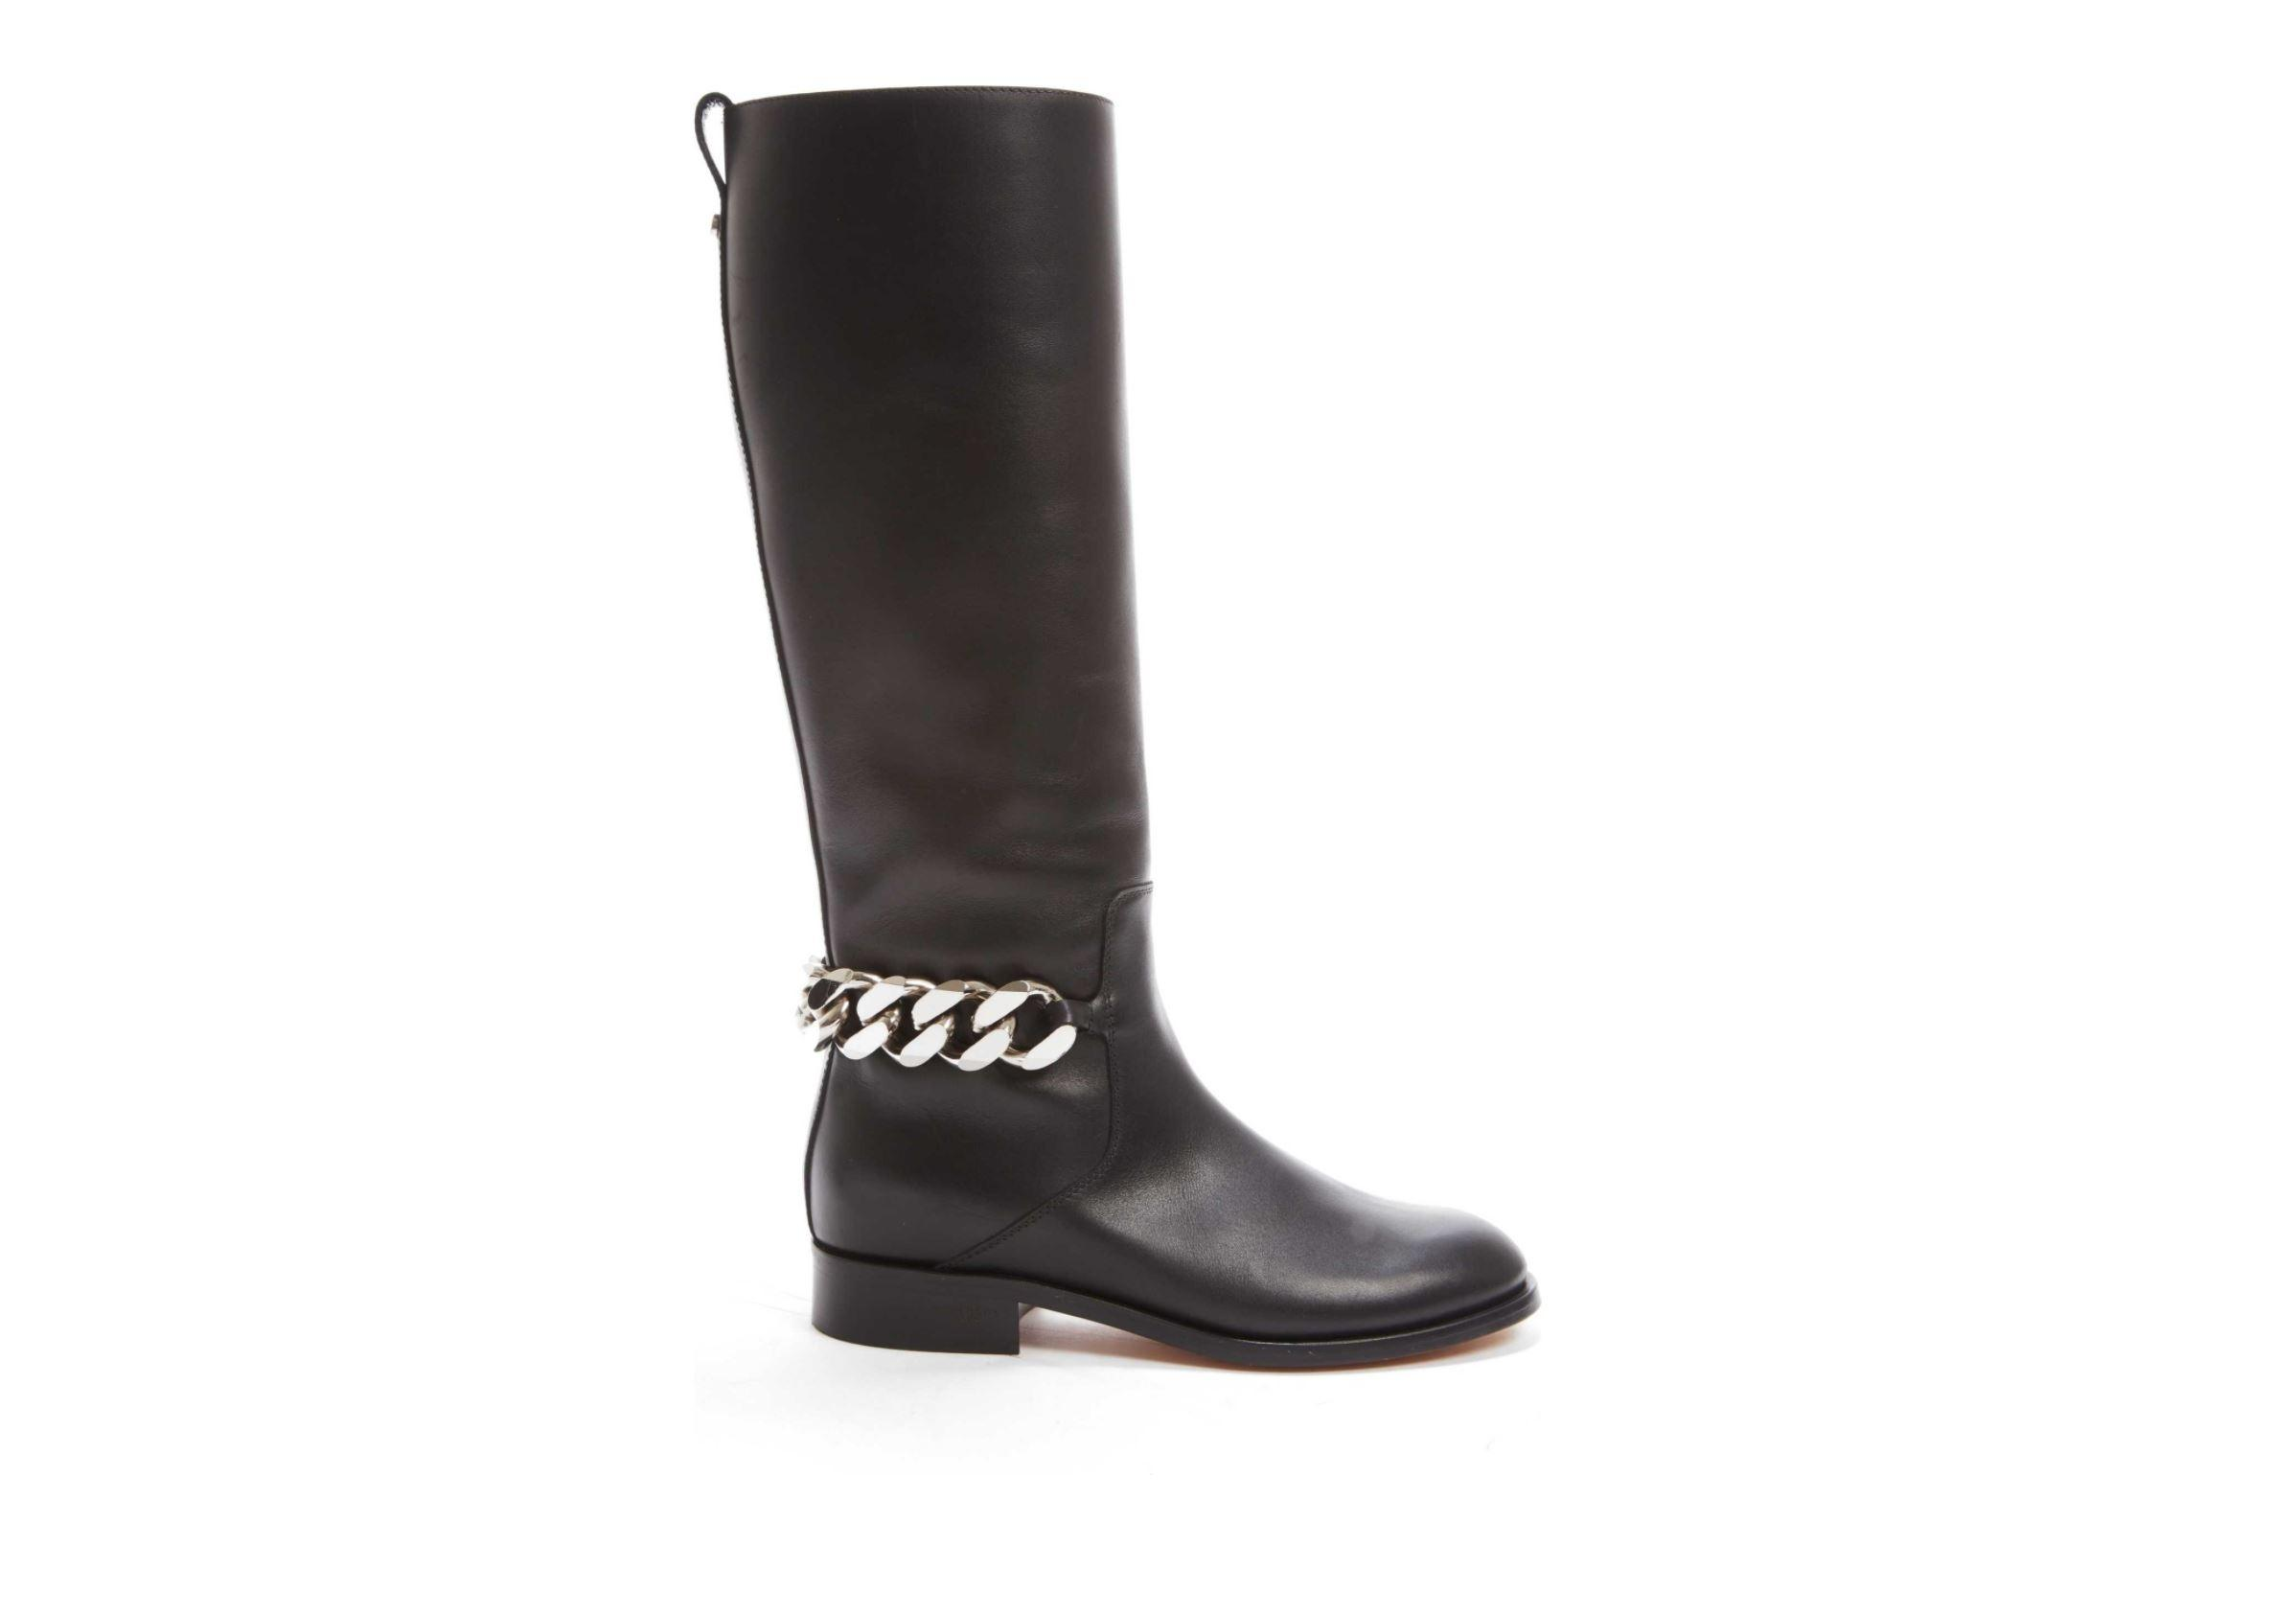 Givenchy Black Leather Chain Tall In 36/Us Boots/Booties Size US 6 Regular (M, B)